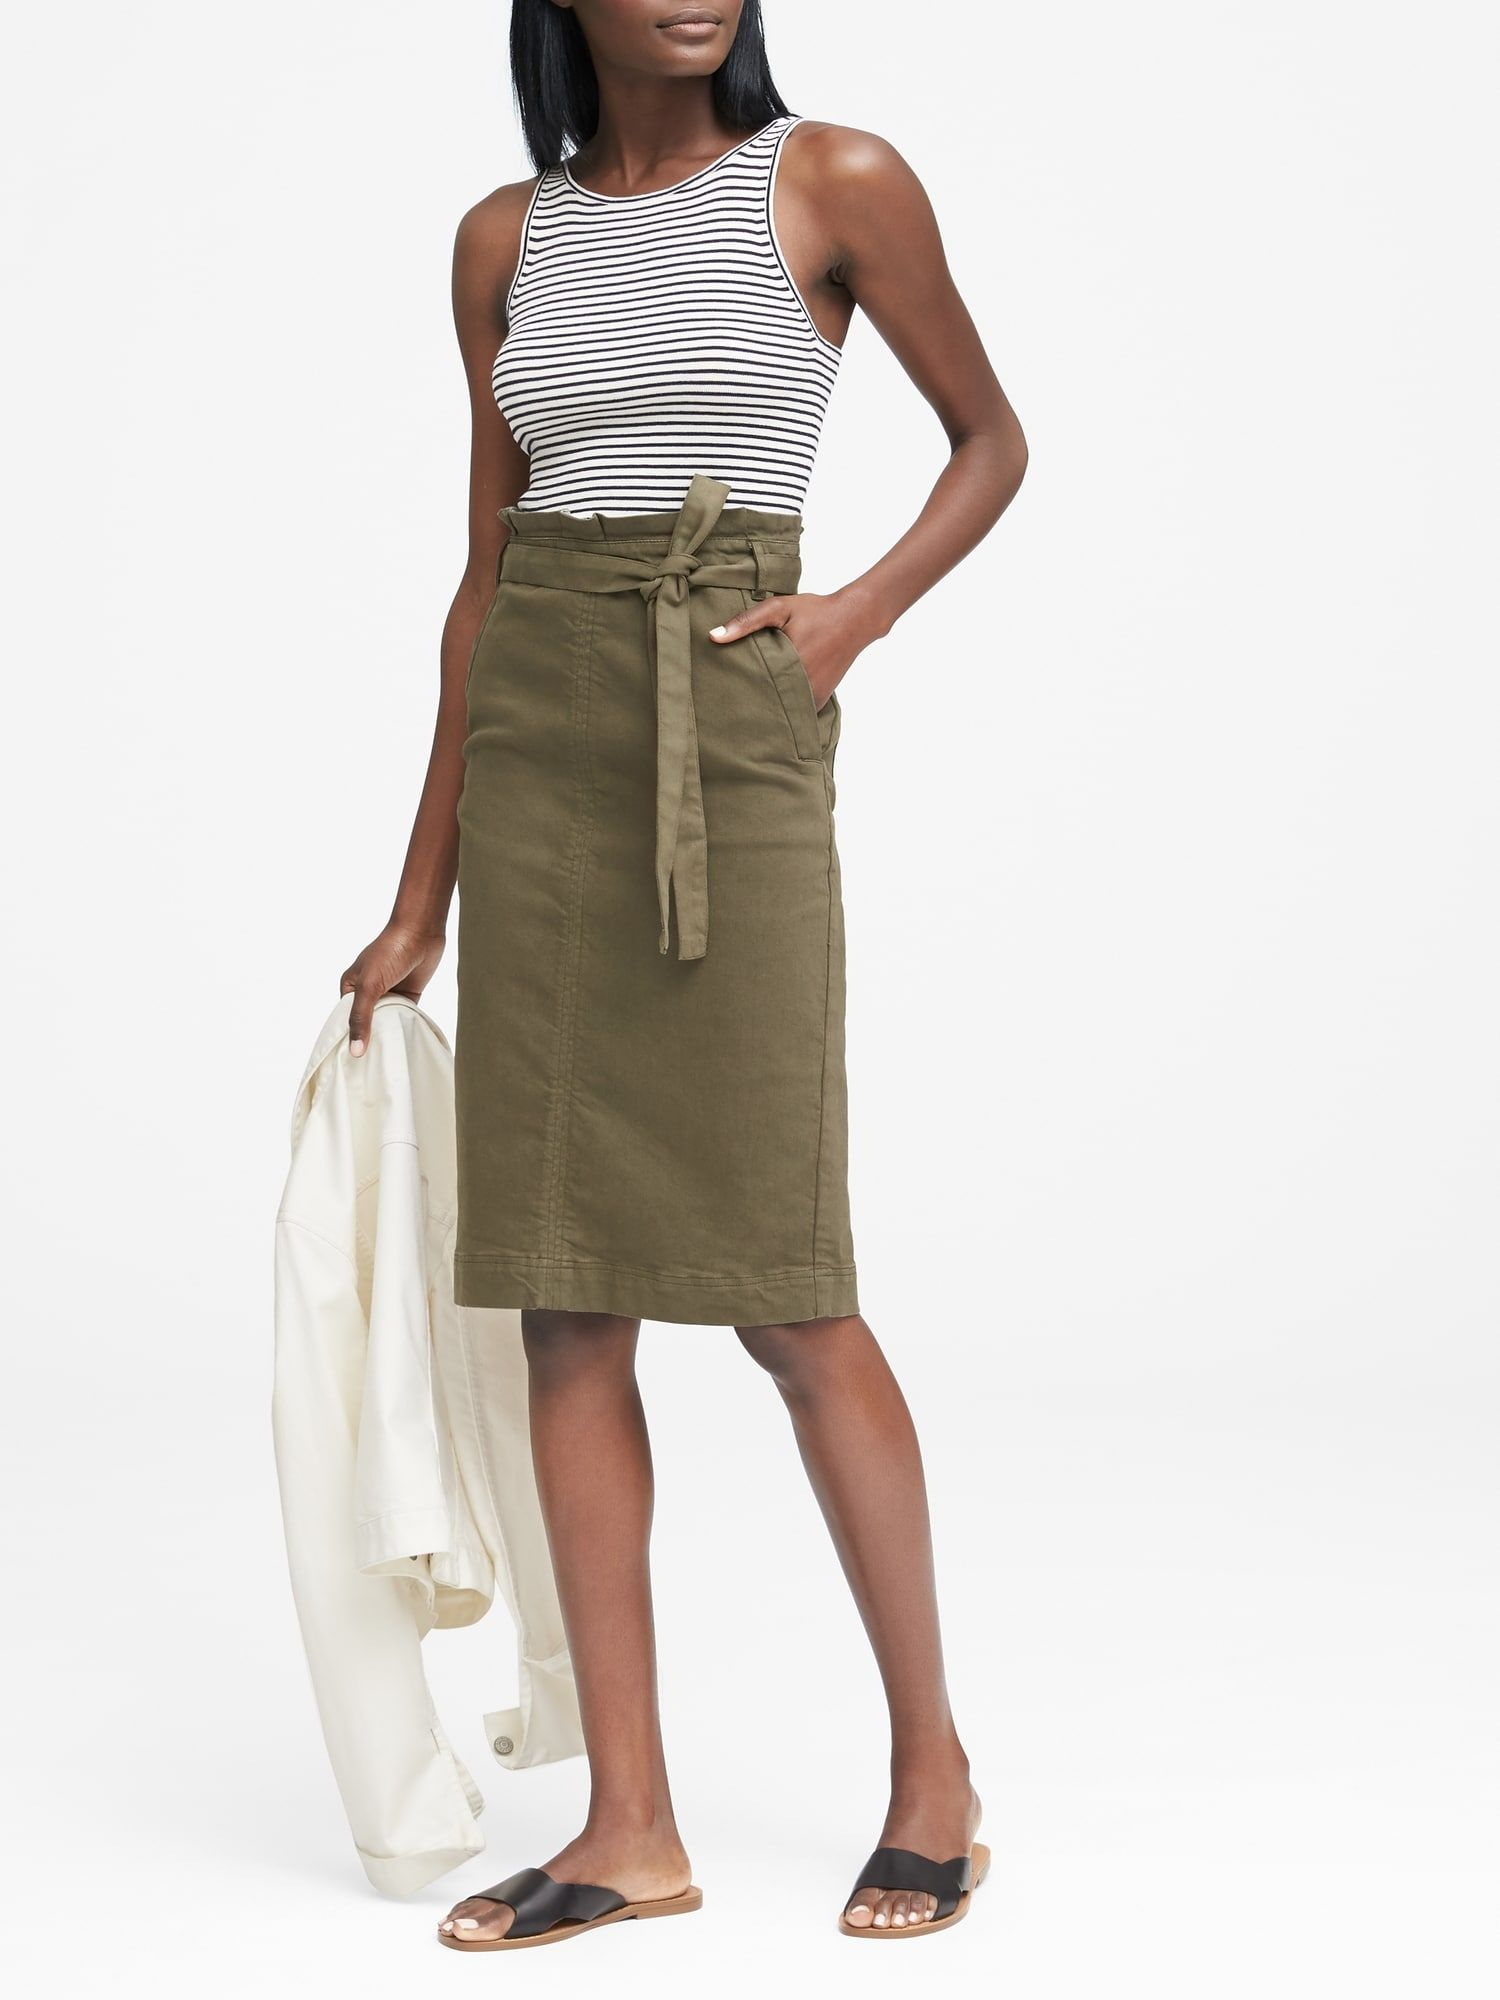 77d3336de Paper bag skirt | Notes from my travels- the shopping edition ...